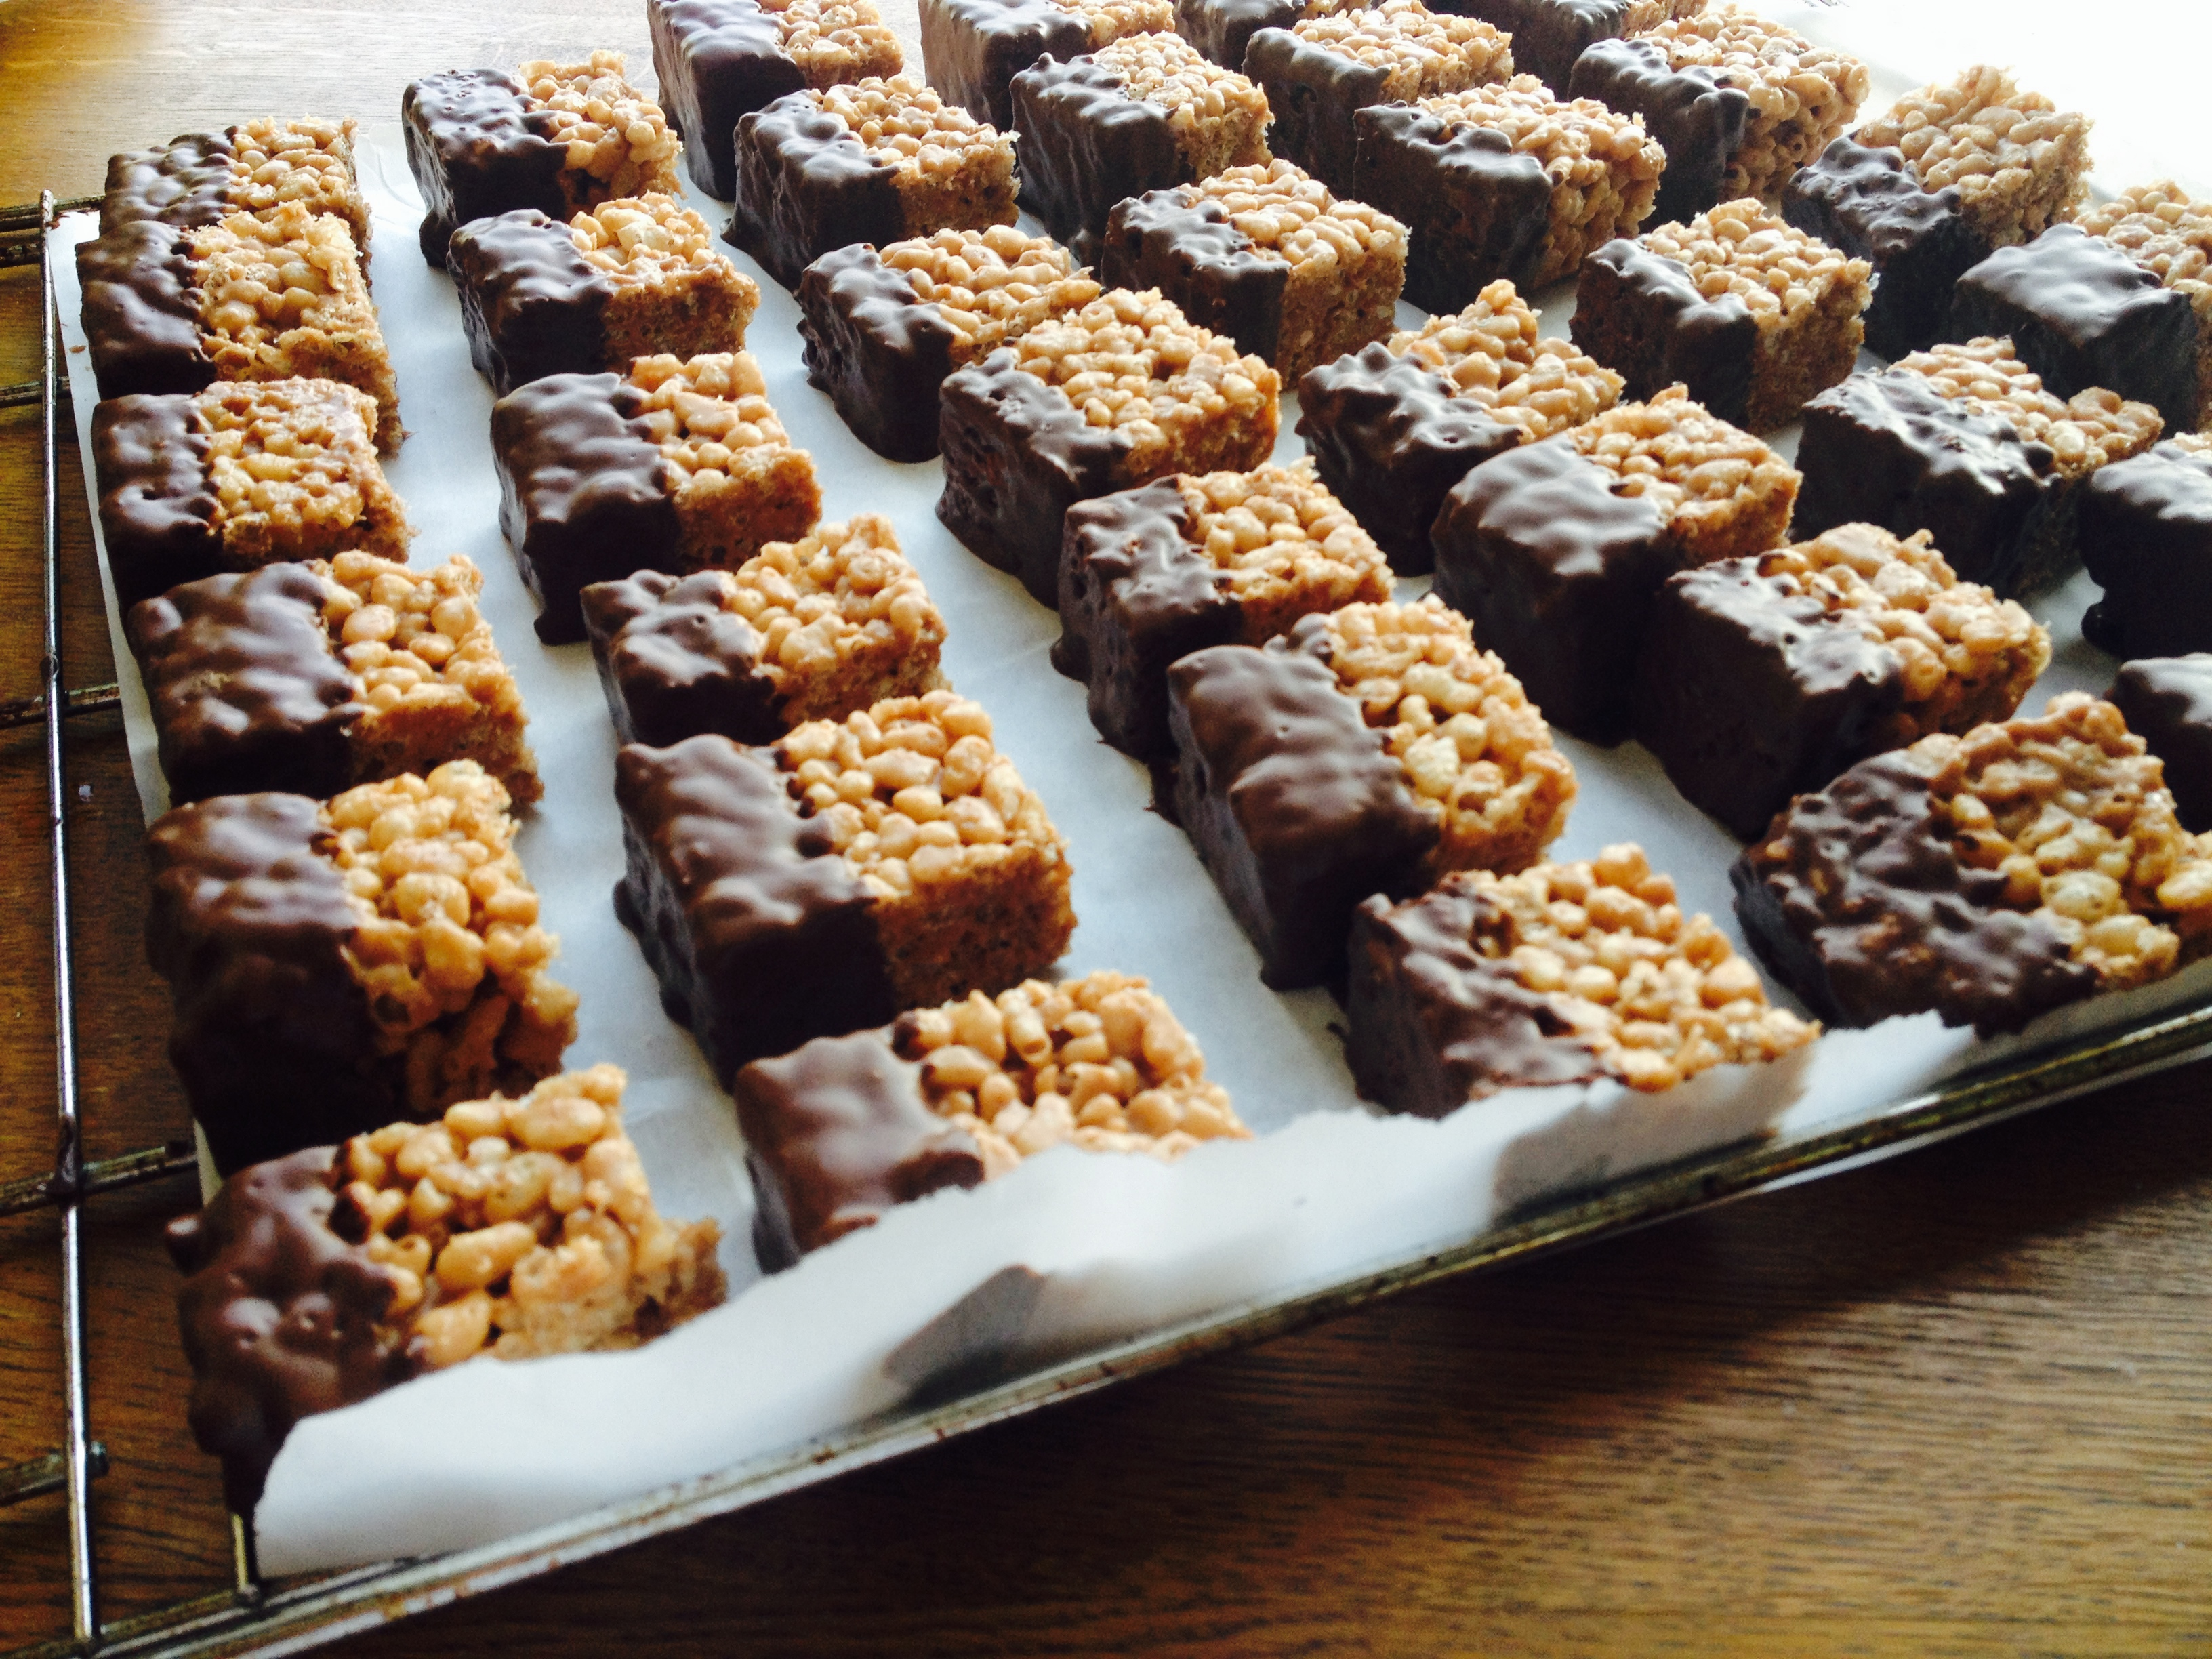 Chocolate dipped rice crispie caramel squares